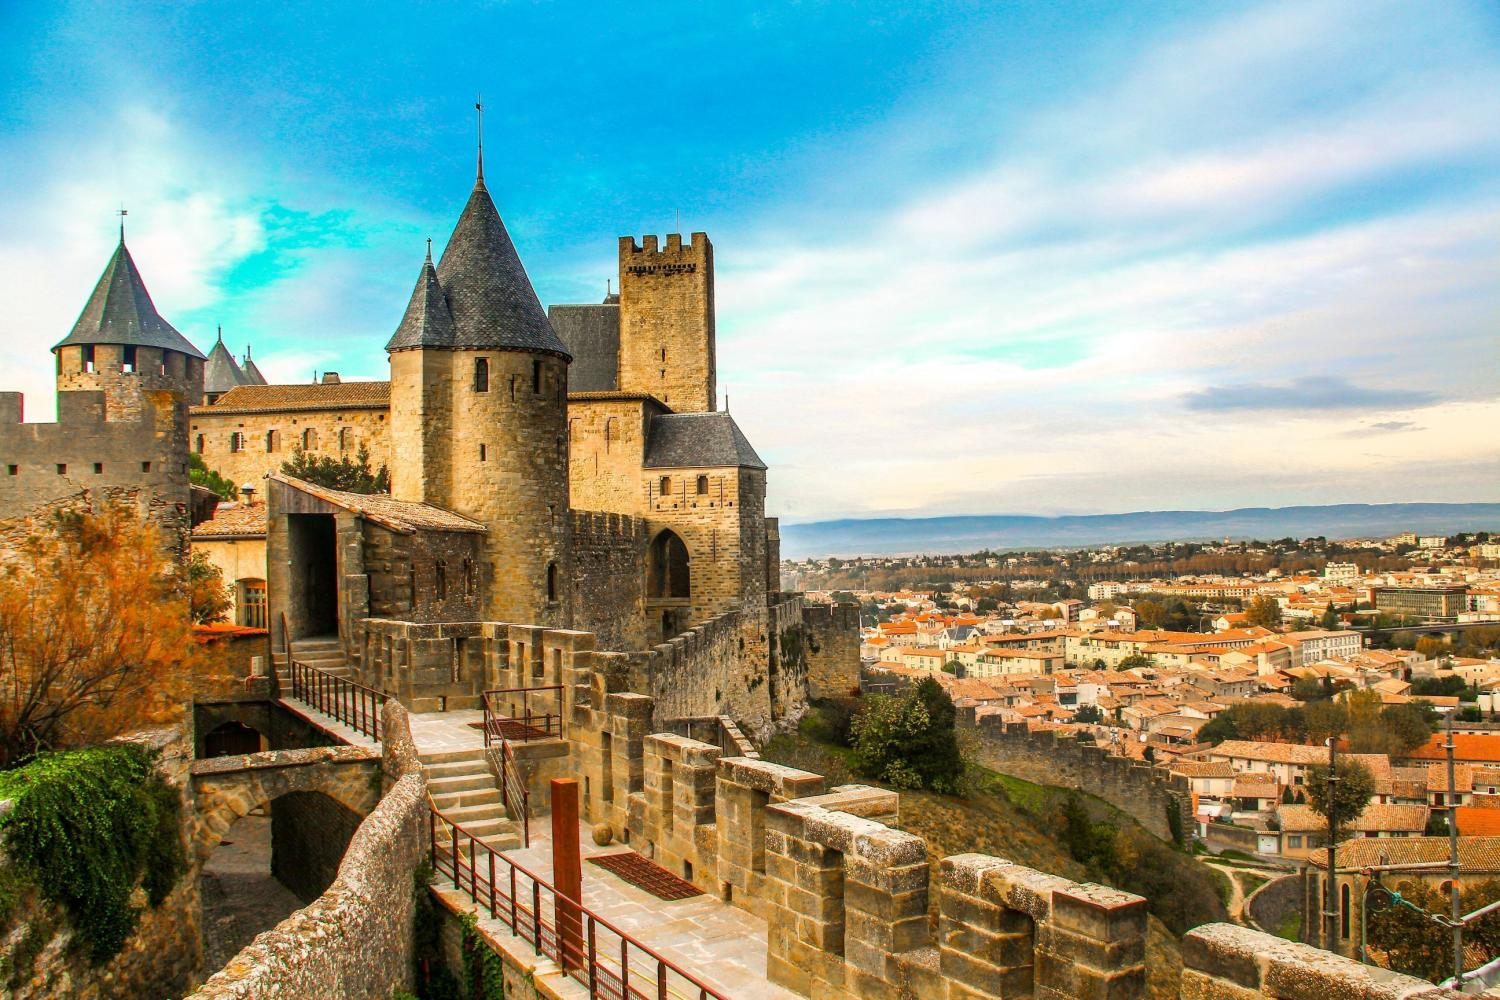 The UNESCO 'Old Cite' of Carcassonne